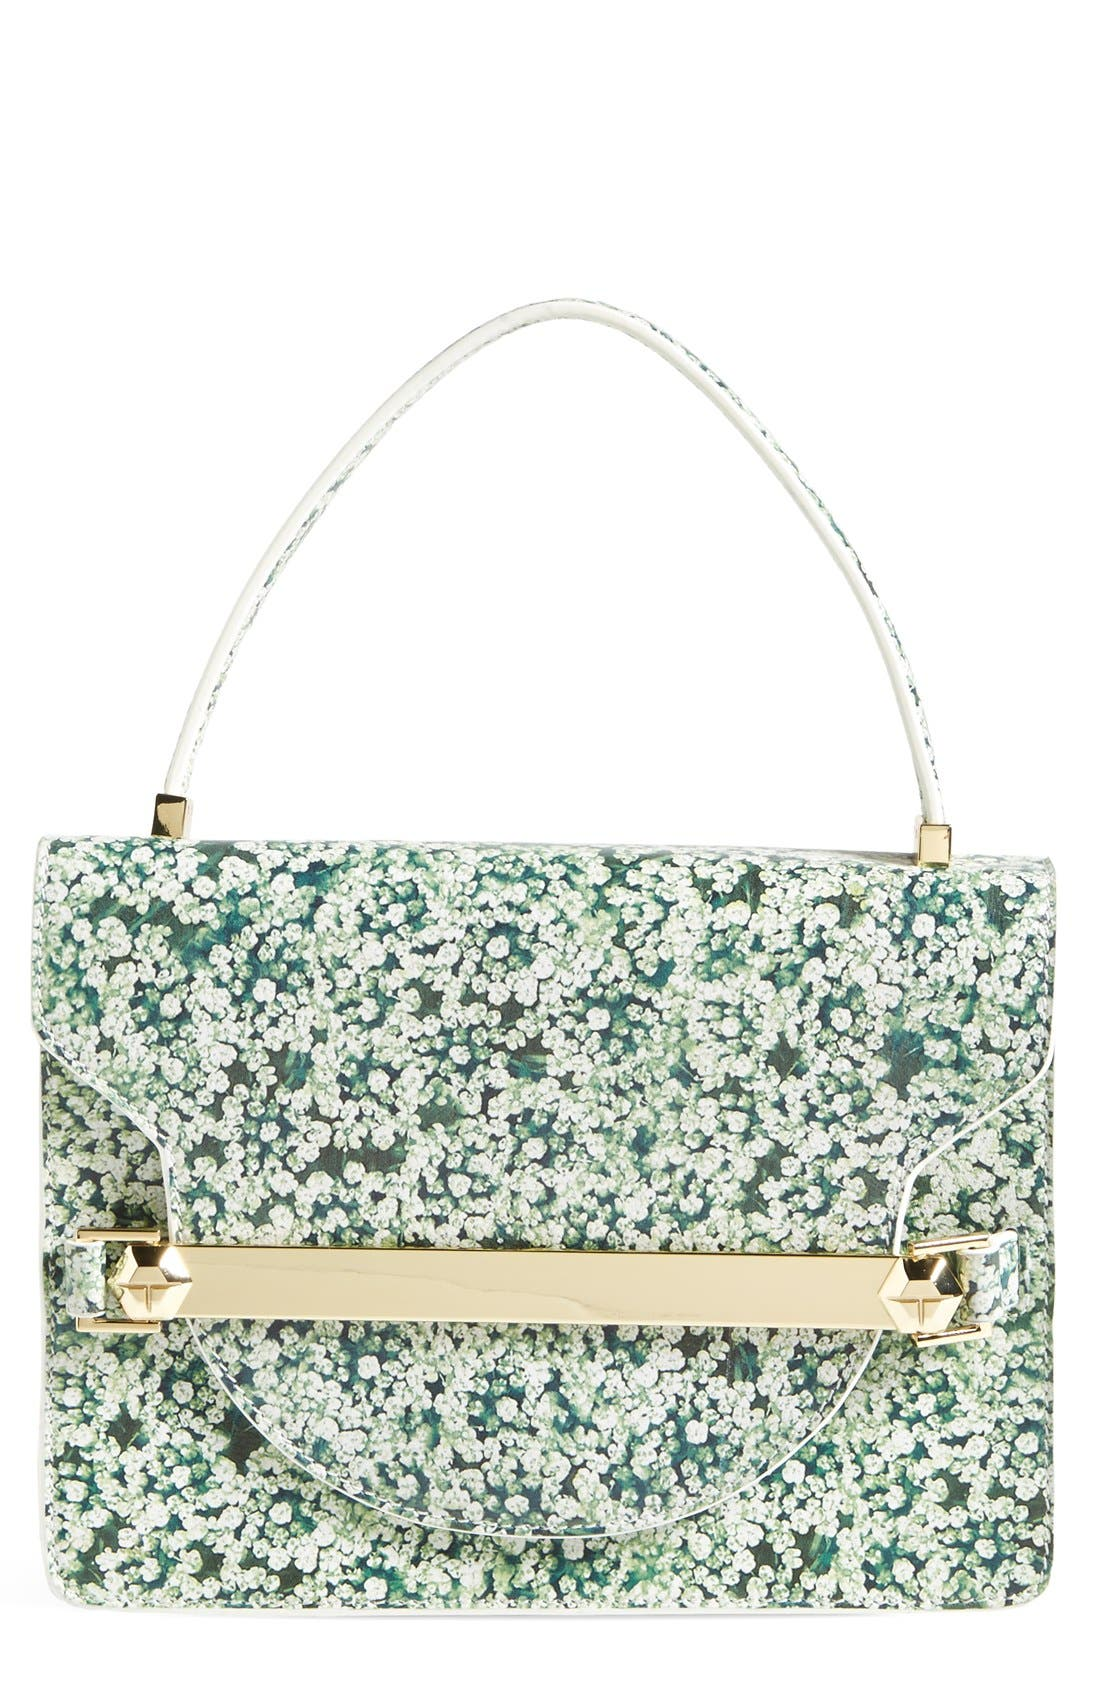 Main Image - Tory Burch 'Marquis' Shoulder Bag